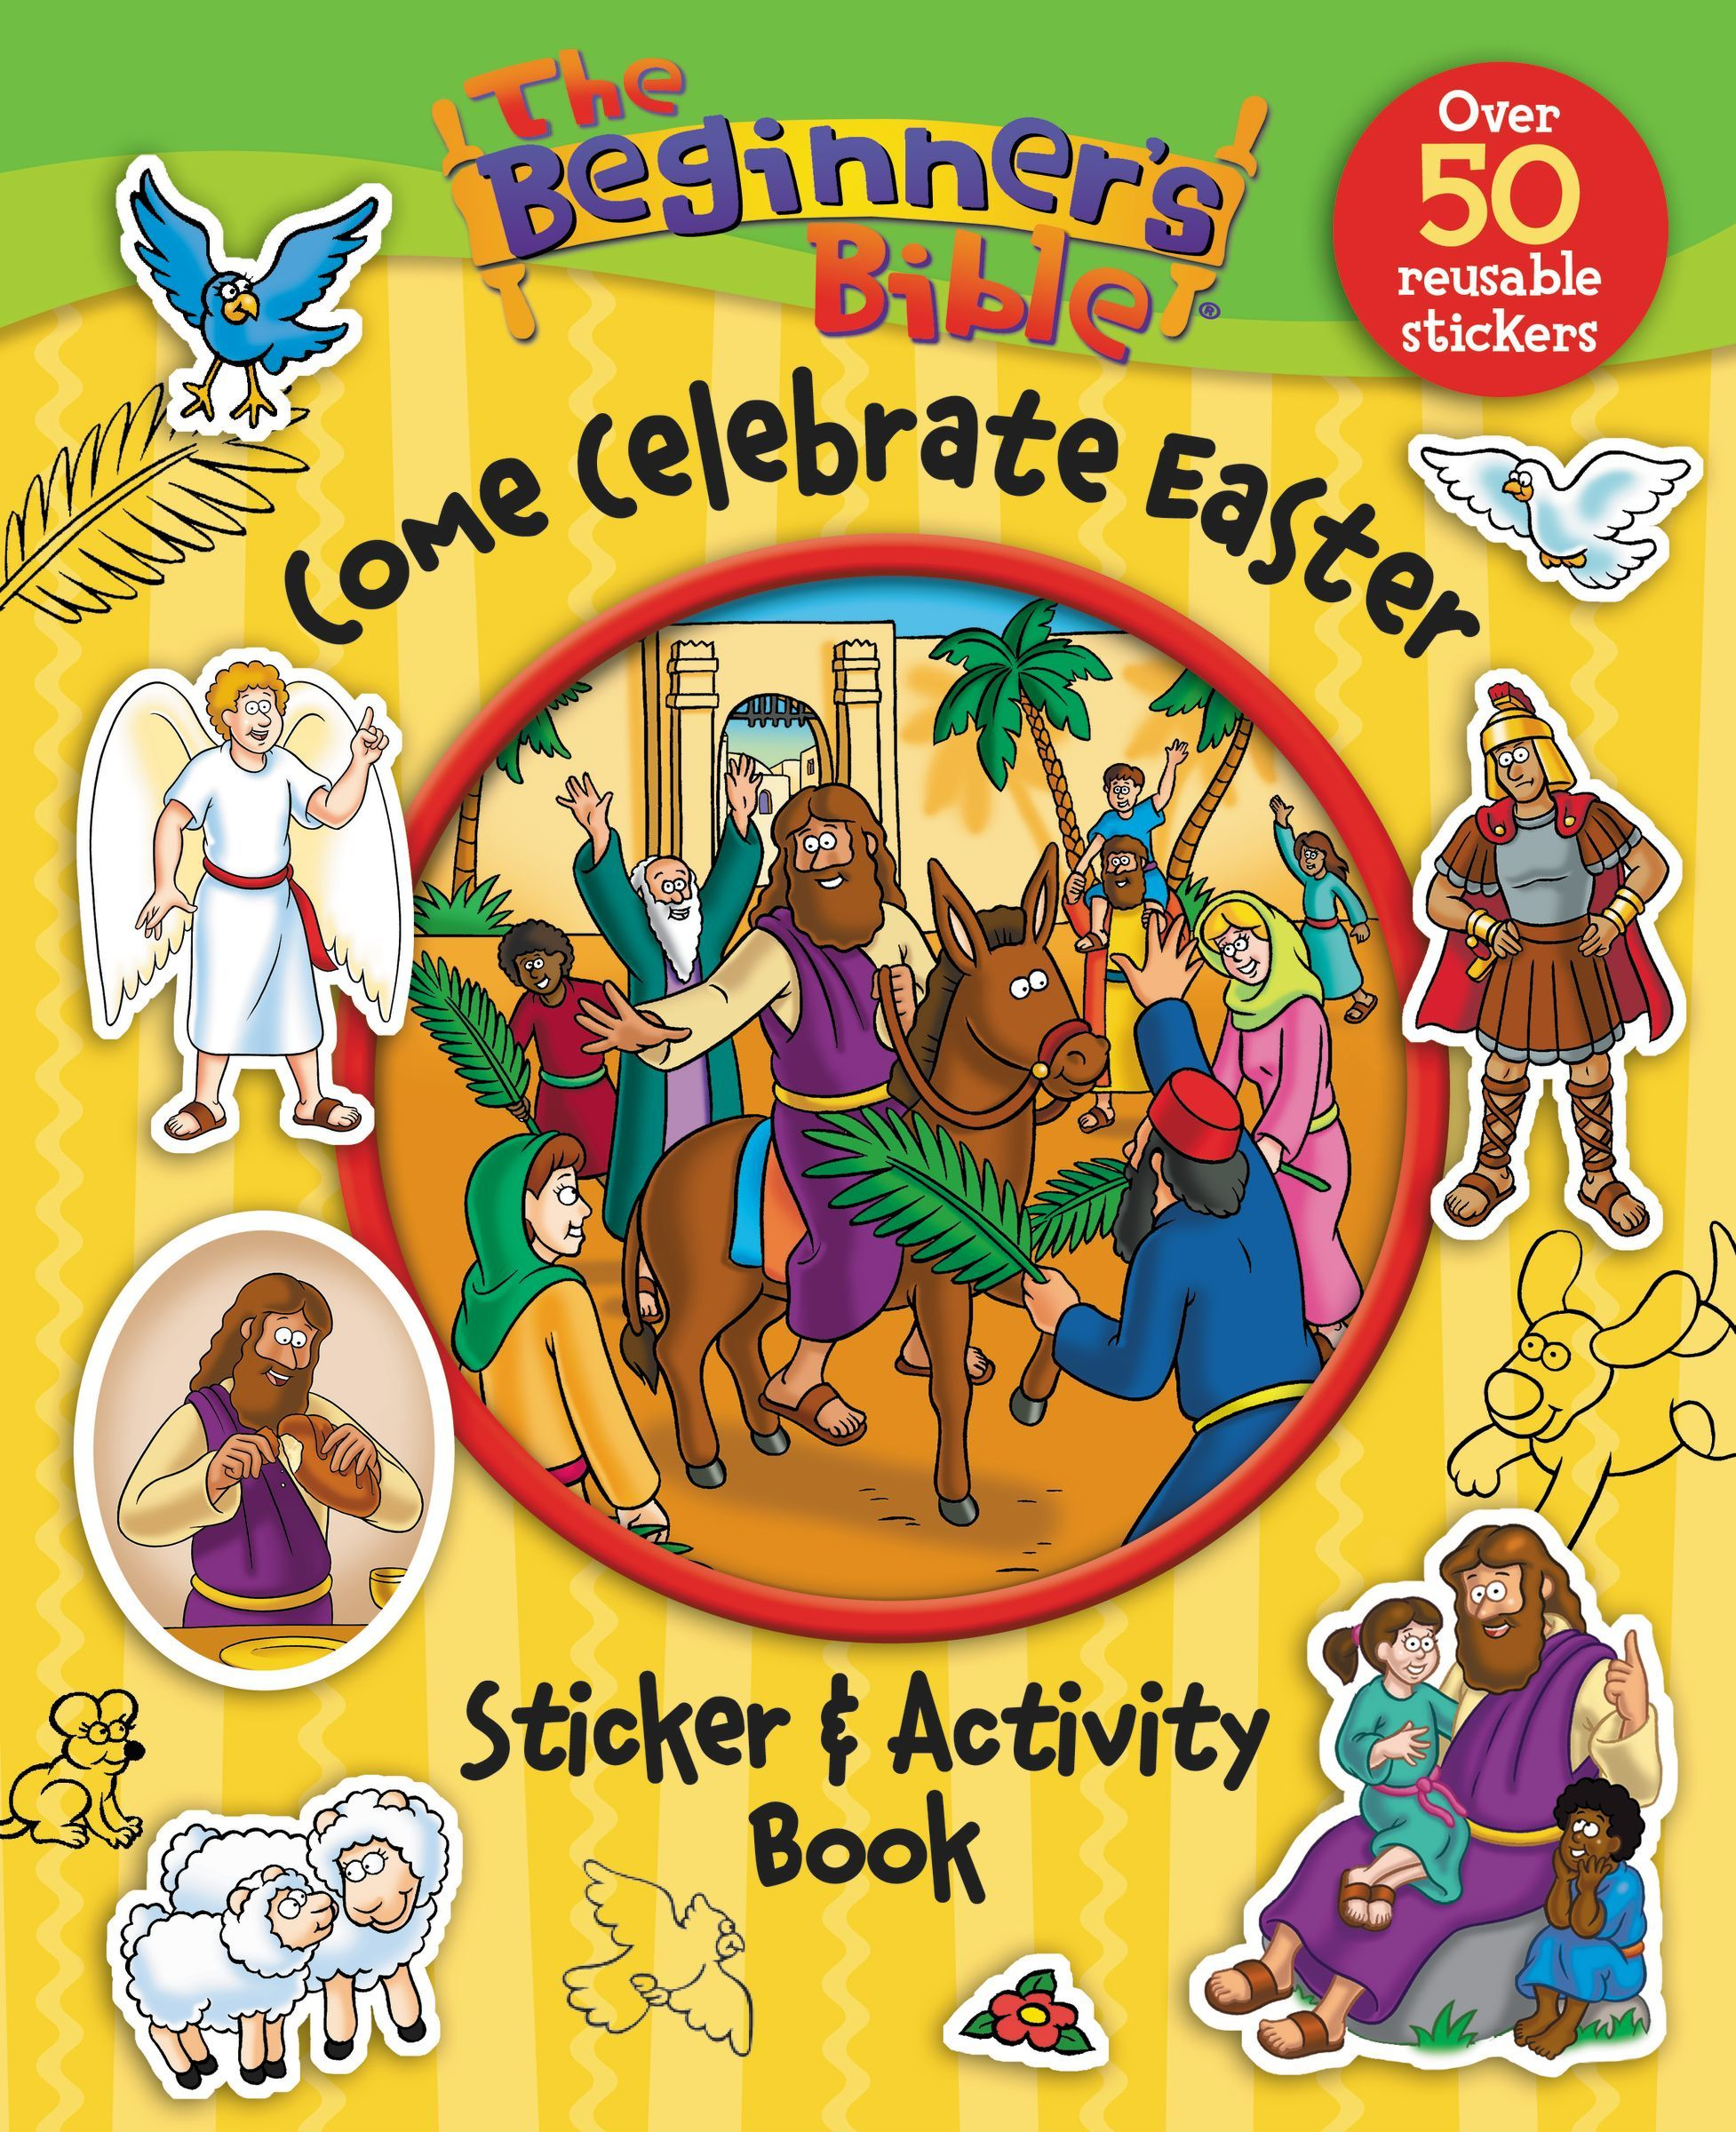 The Beginner's Bible Come Celebrate Easter Sticker & Activity Book